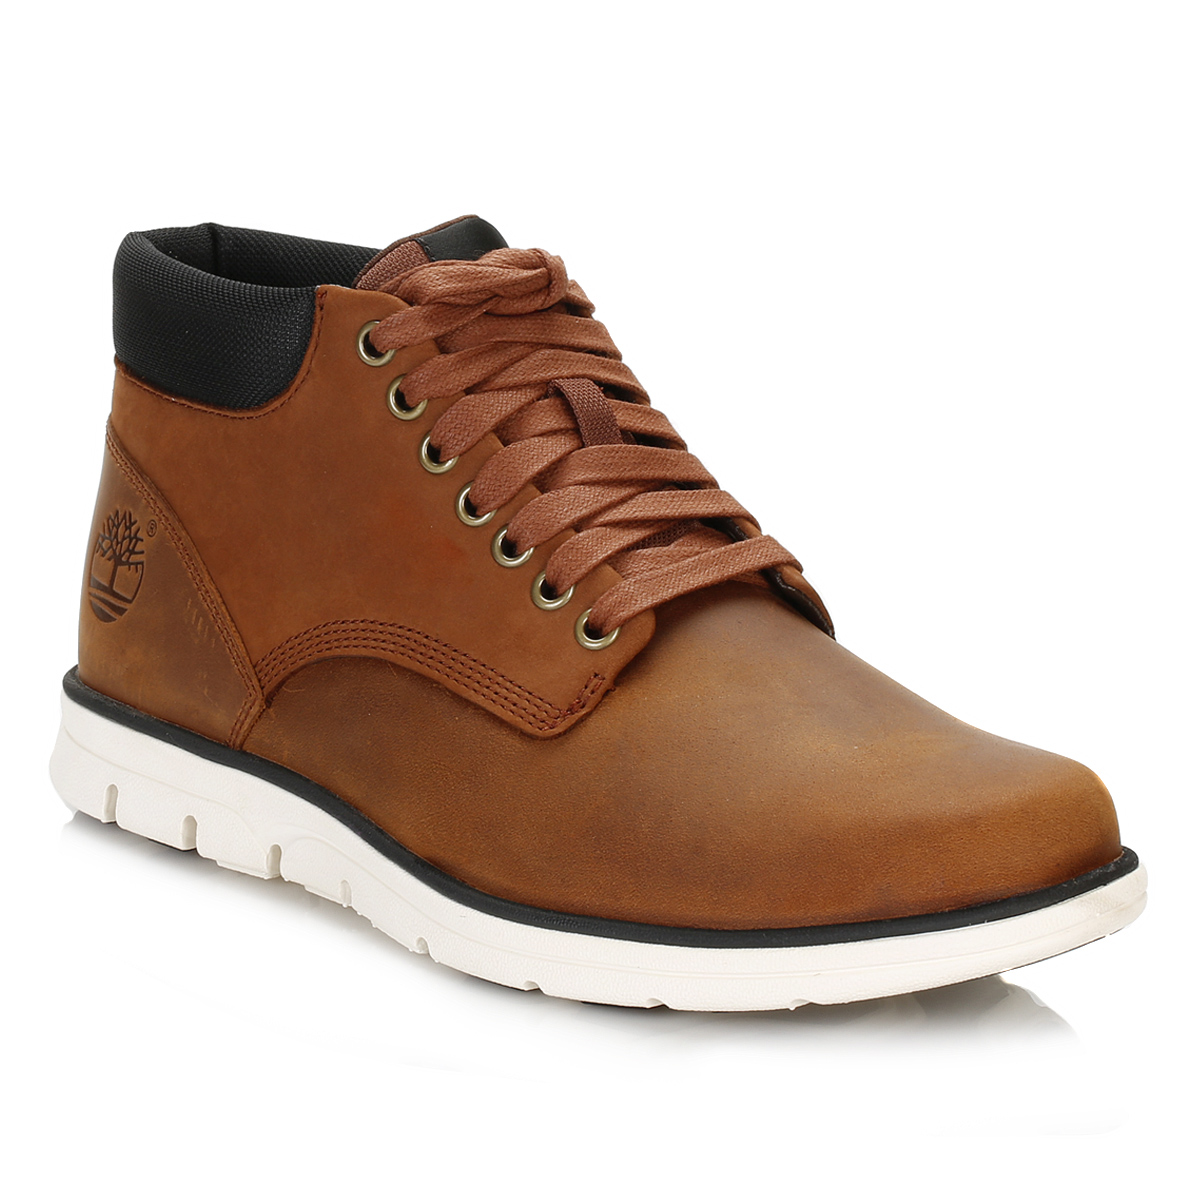 Details about Timberland Mens Chukka Boots Red Brown Bradstreet Leather  Lace Up Casual CA13EE c366765c034